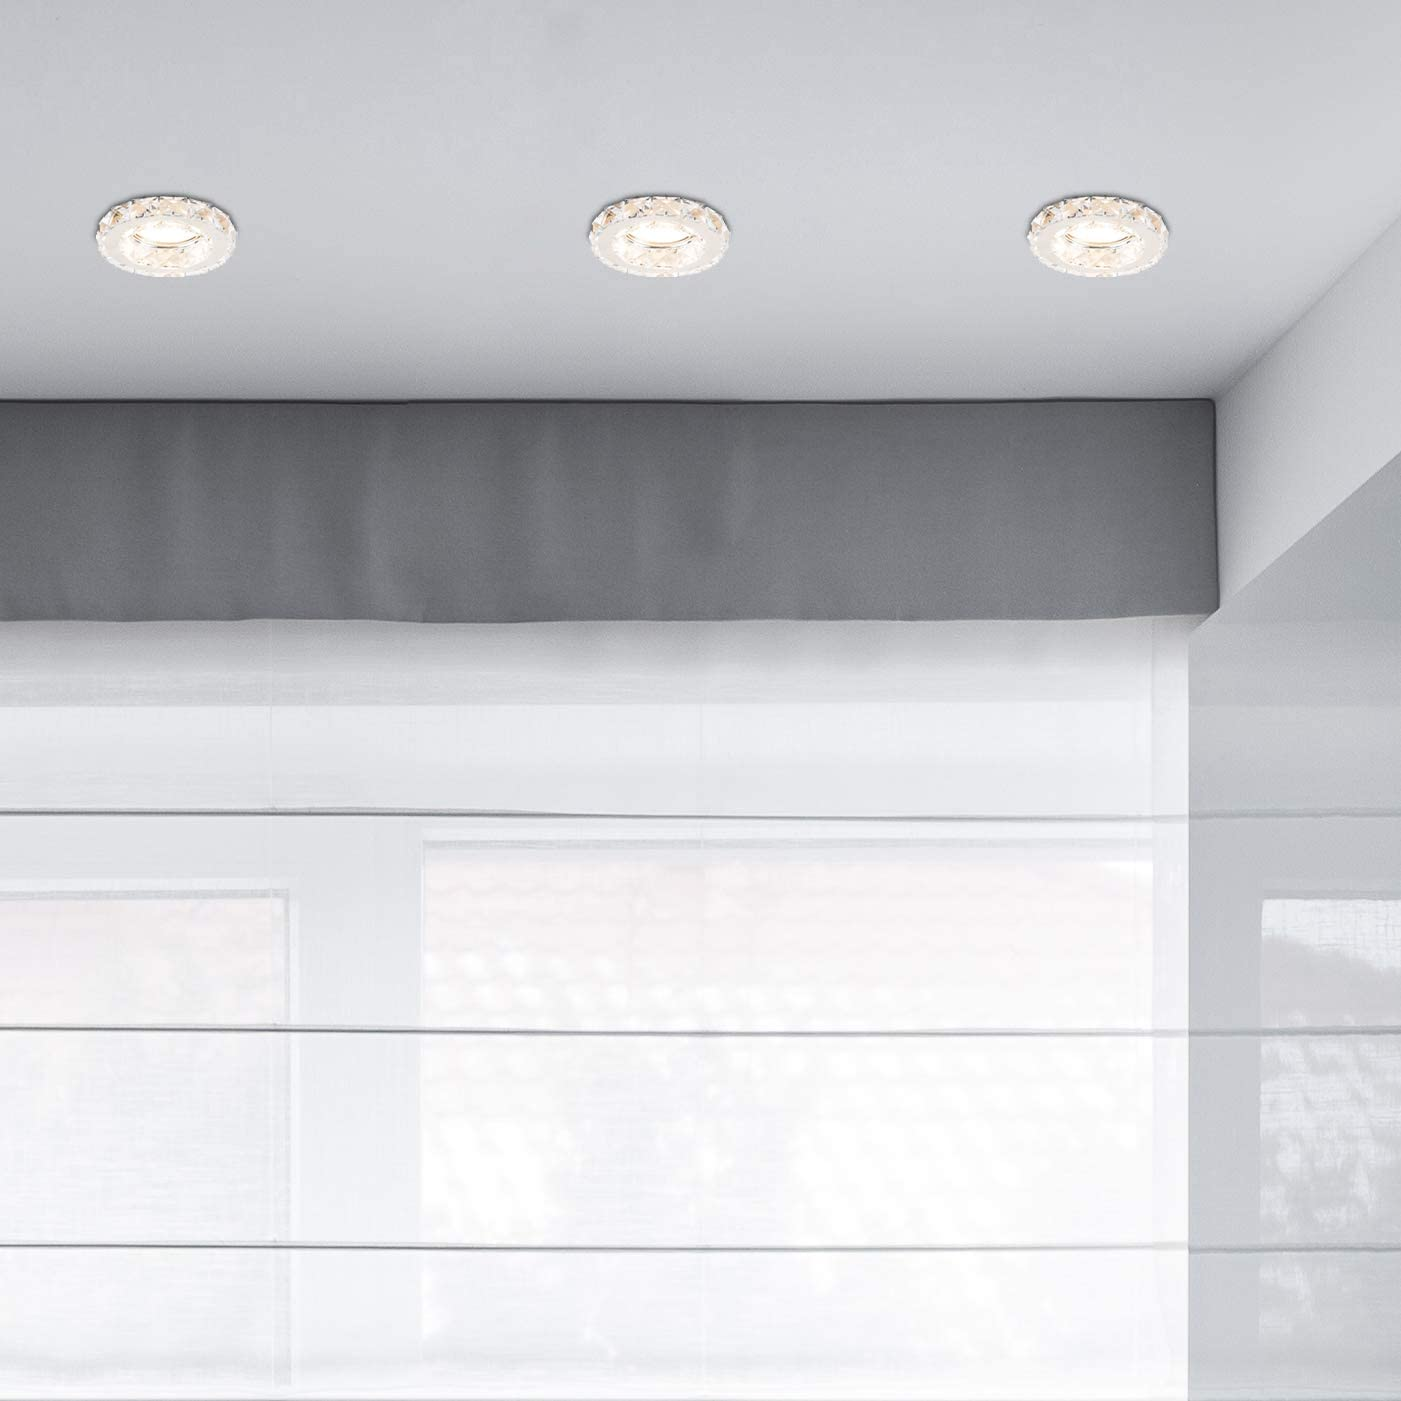 Modern Fire Rated Polished Chrome /& K9 Genuine Crystal GU10 Ceiling Downlights Pack of 10